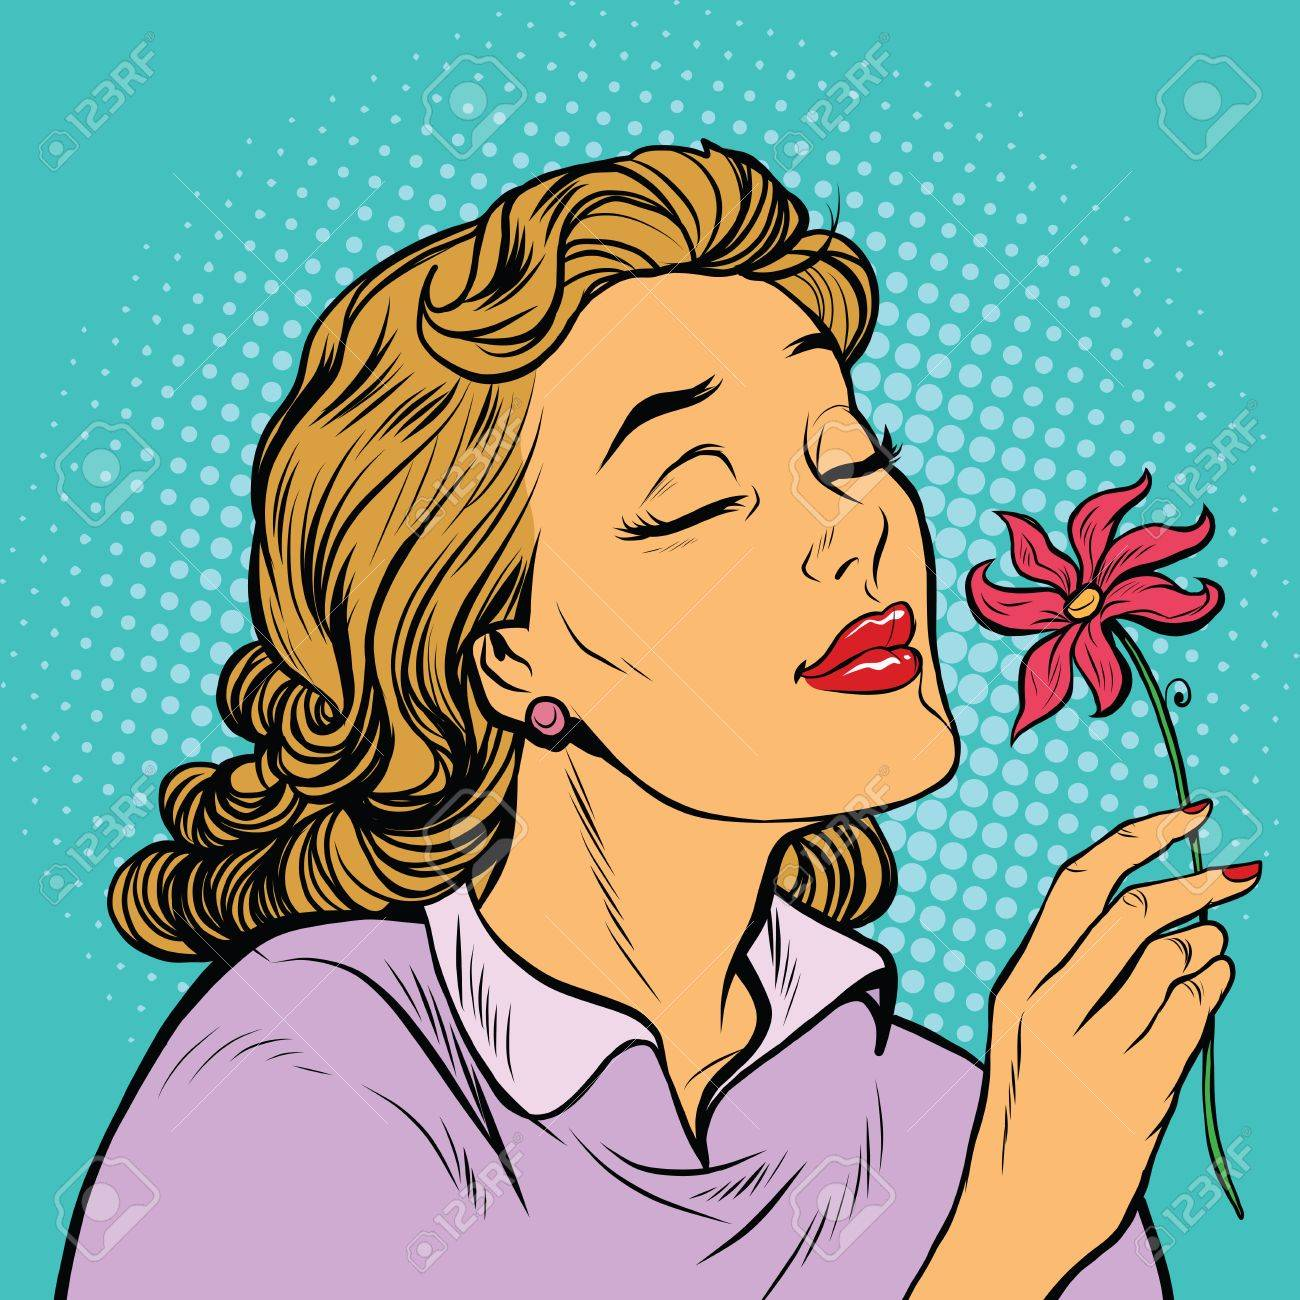 Beautiful Woman Inhaling Fragrance Of A Flower Pop Art Retro Royalty Free Cliparts Vectors And Stock Illustration Image 63634874